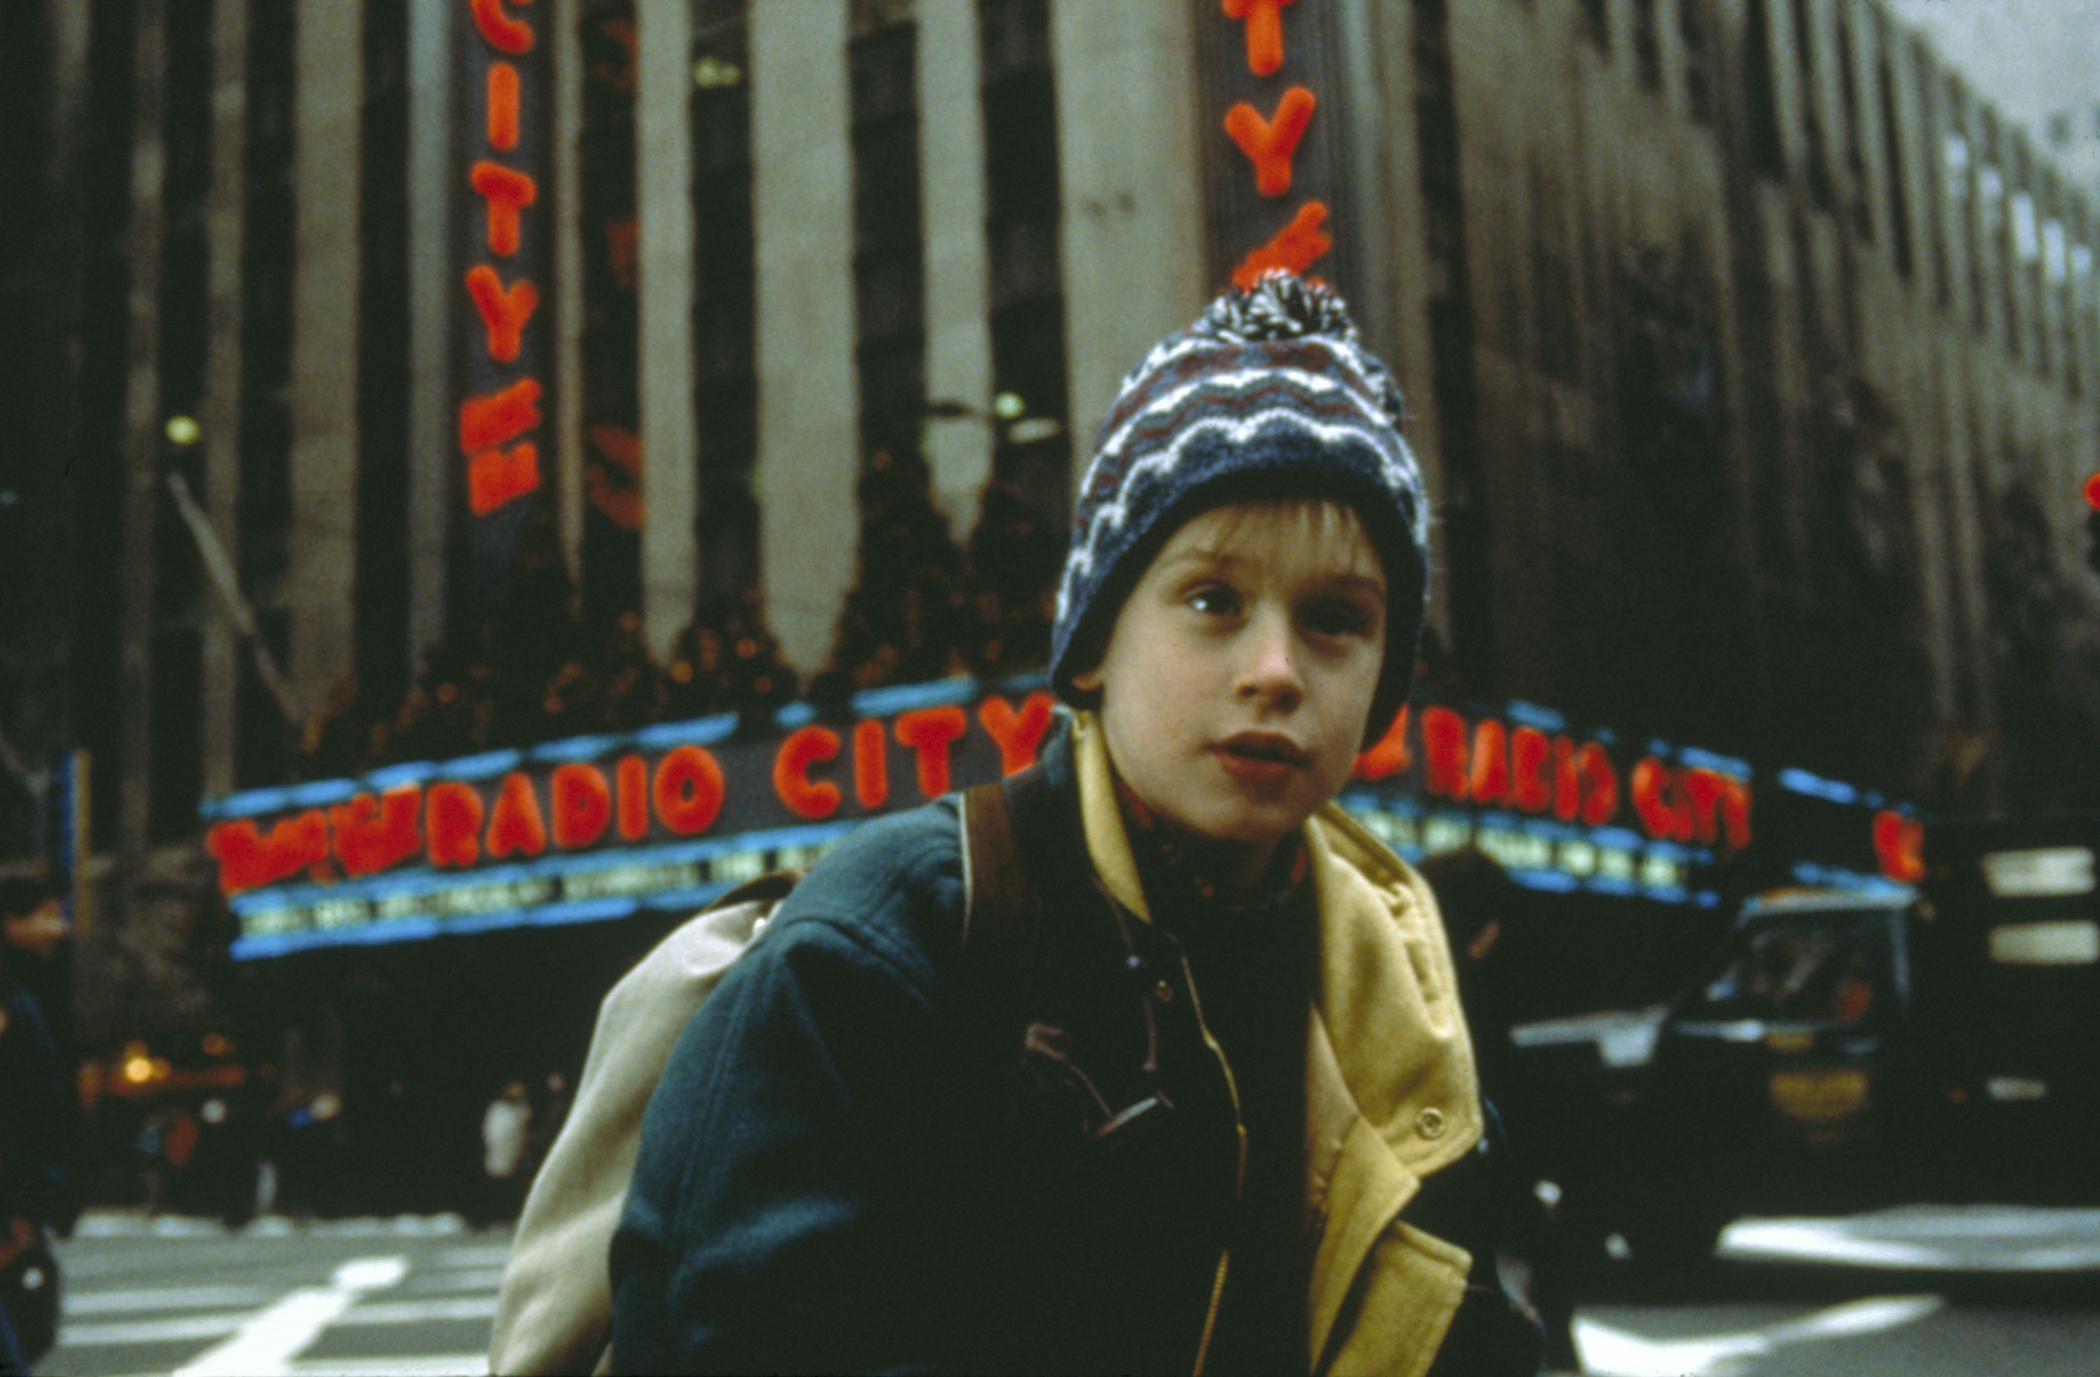 No. 4: Home Alone 2: Lost in New York, the sequel to the classic Christmas movie, follows a young boy who is separated from his family at the holidays after boarding the wrong flight. The 1992 flick collected $173.6 million at the box office.